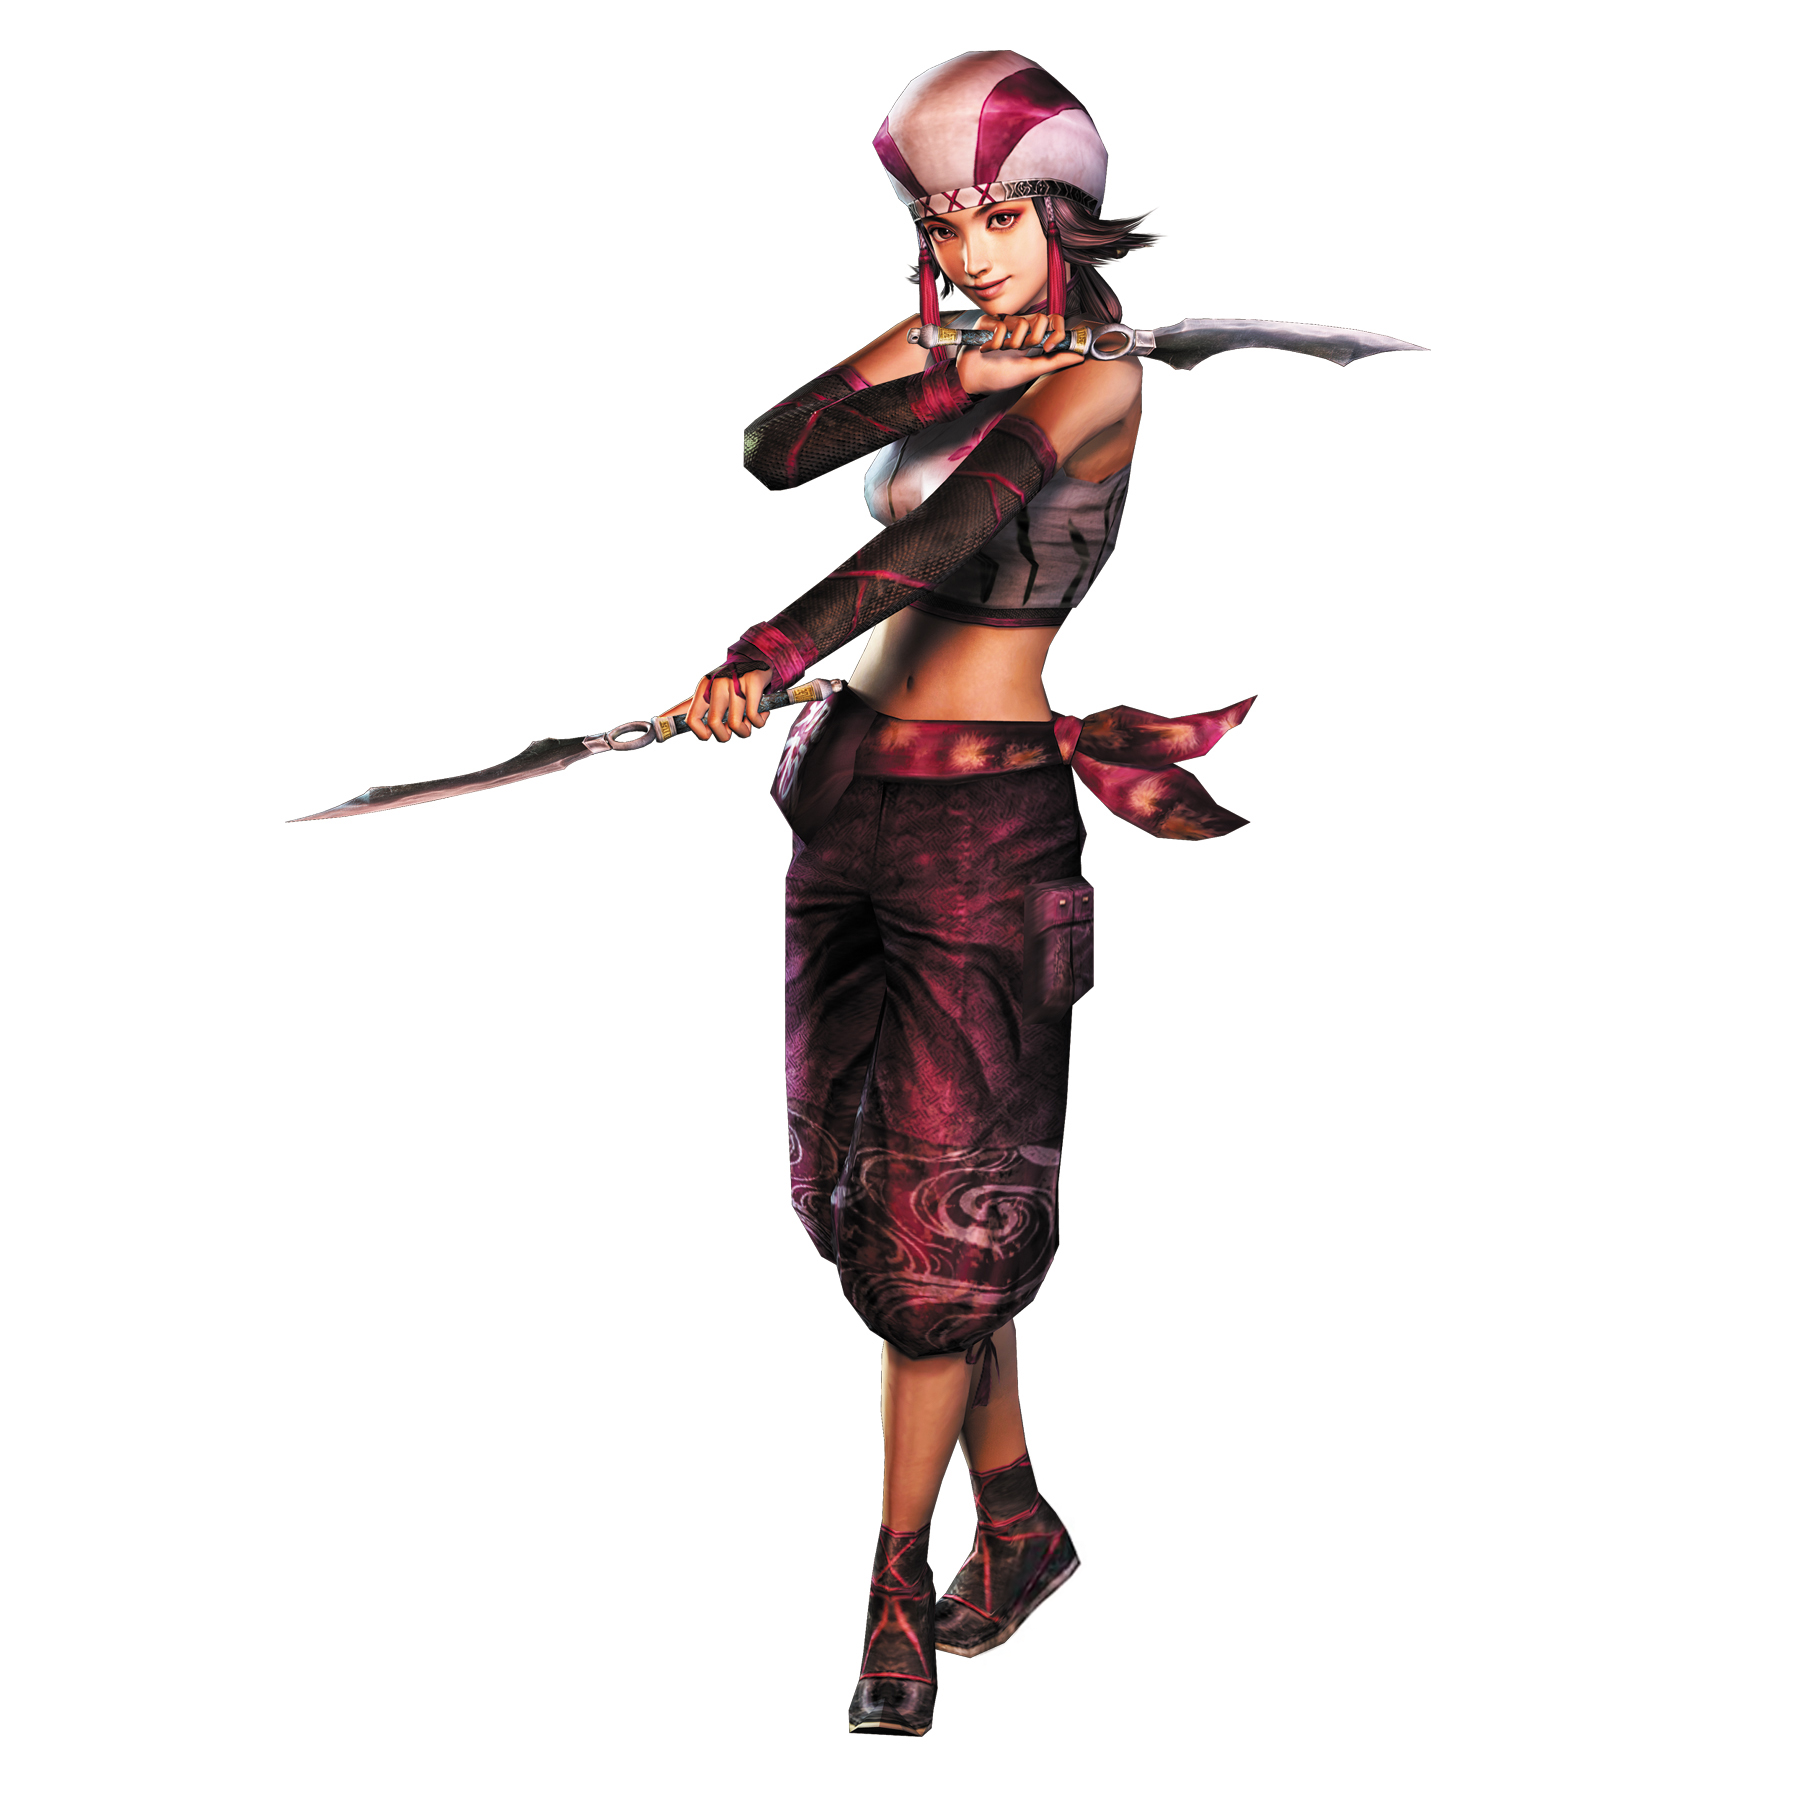 Warriors Orochi 3 Ultimate Dlc Weapons